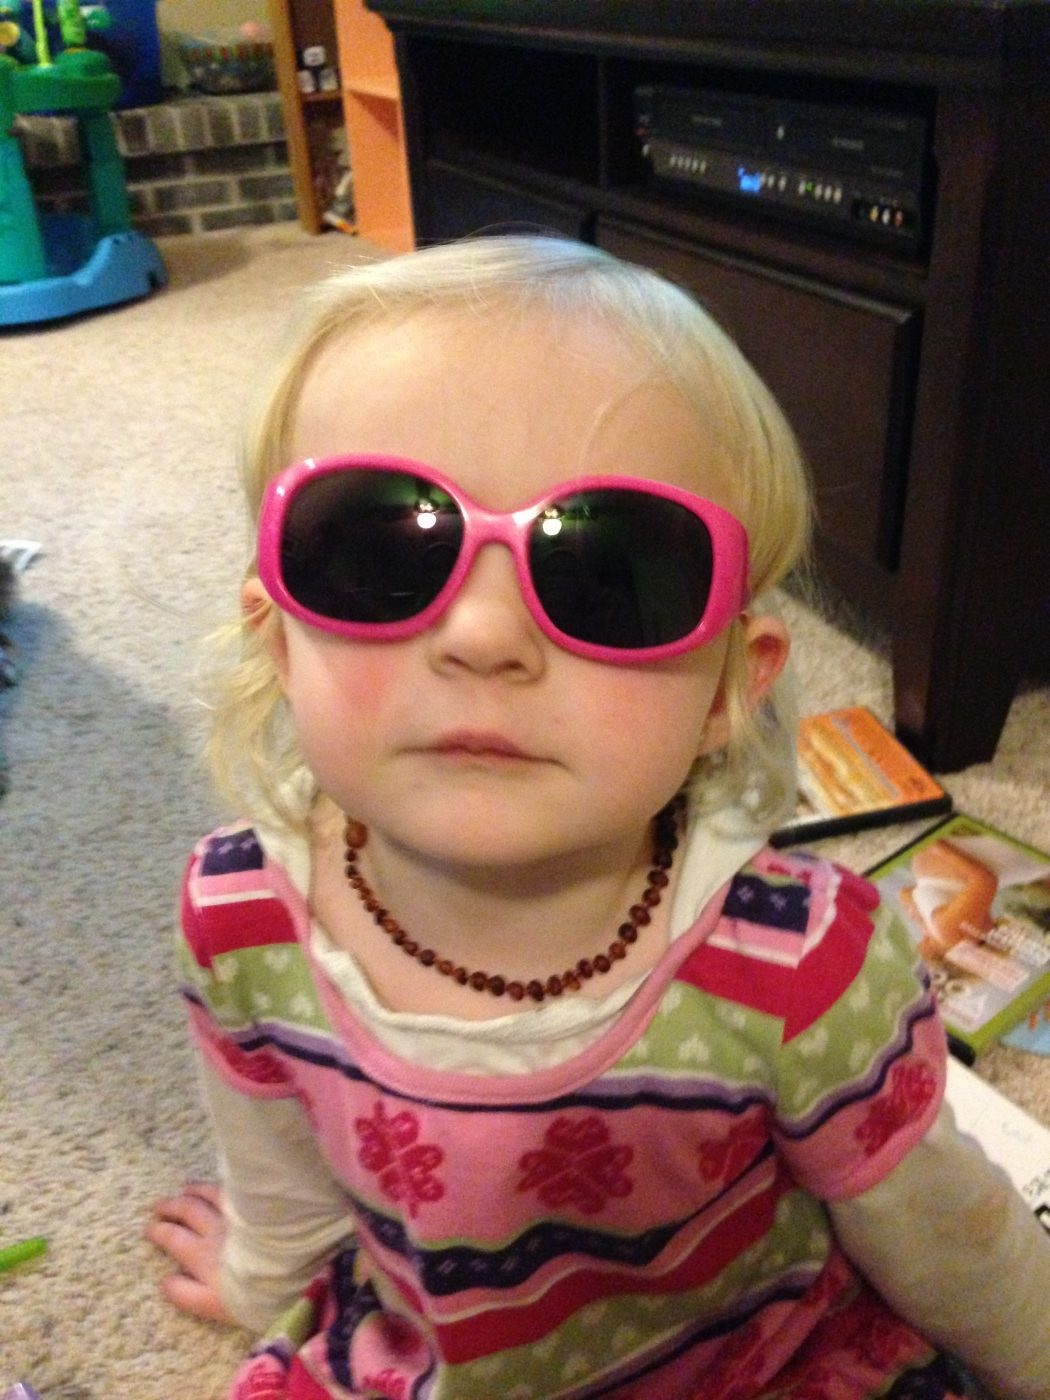 photo-1-46-e1362096961380 Sunglasses For Babies Are Very Important In Protection Just Like For Mom and Dad